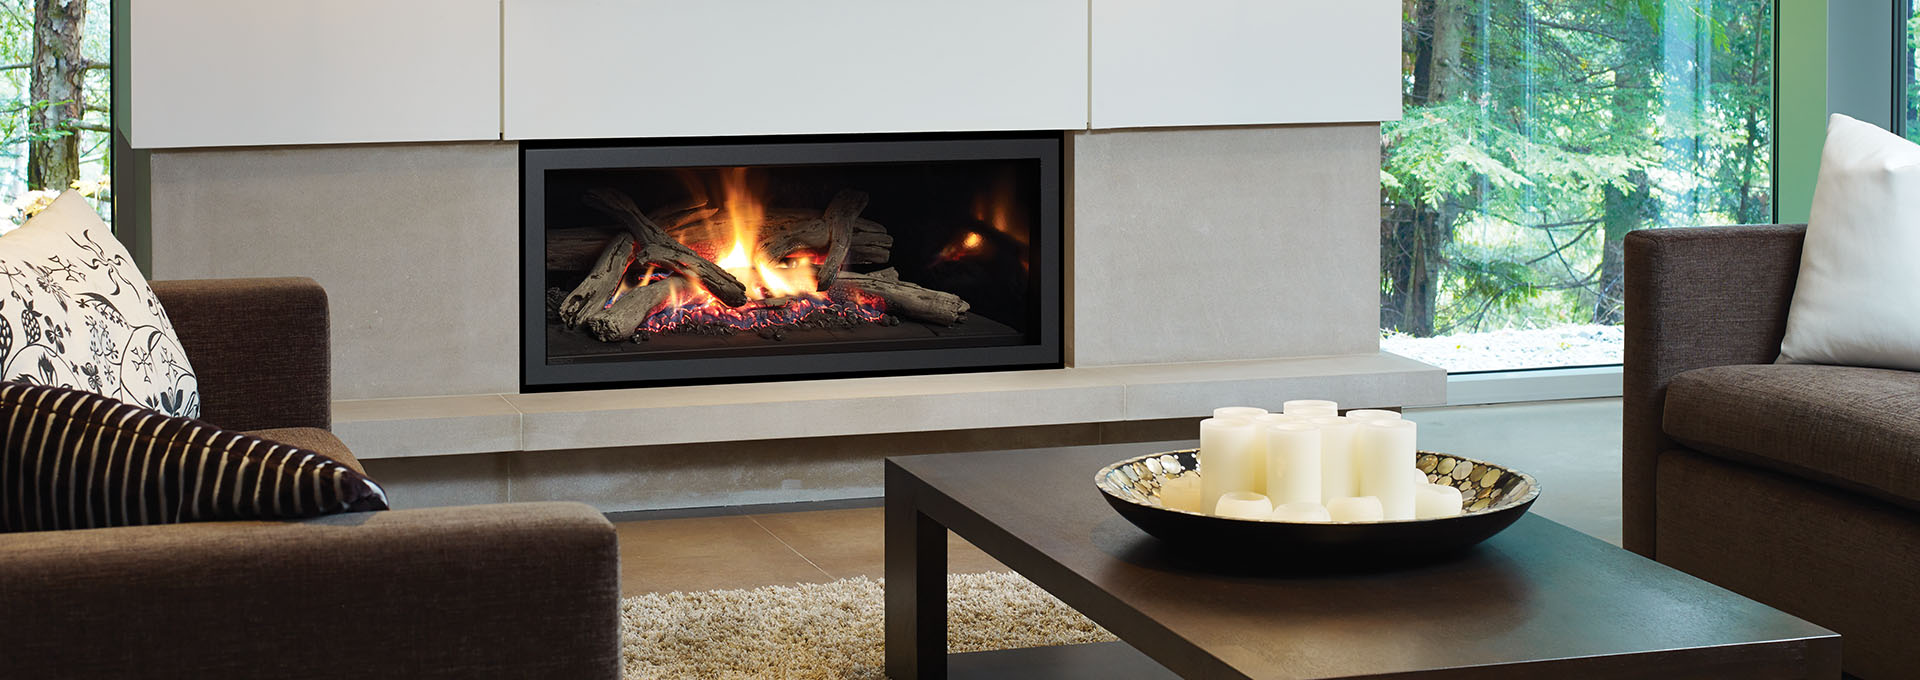 contemporary gas fireplaces regency fireplace products rh regency fire com contemporary gas fireplaces near me contemporary gas fireplaces near me